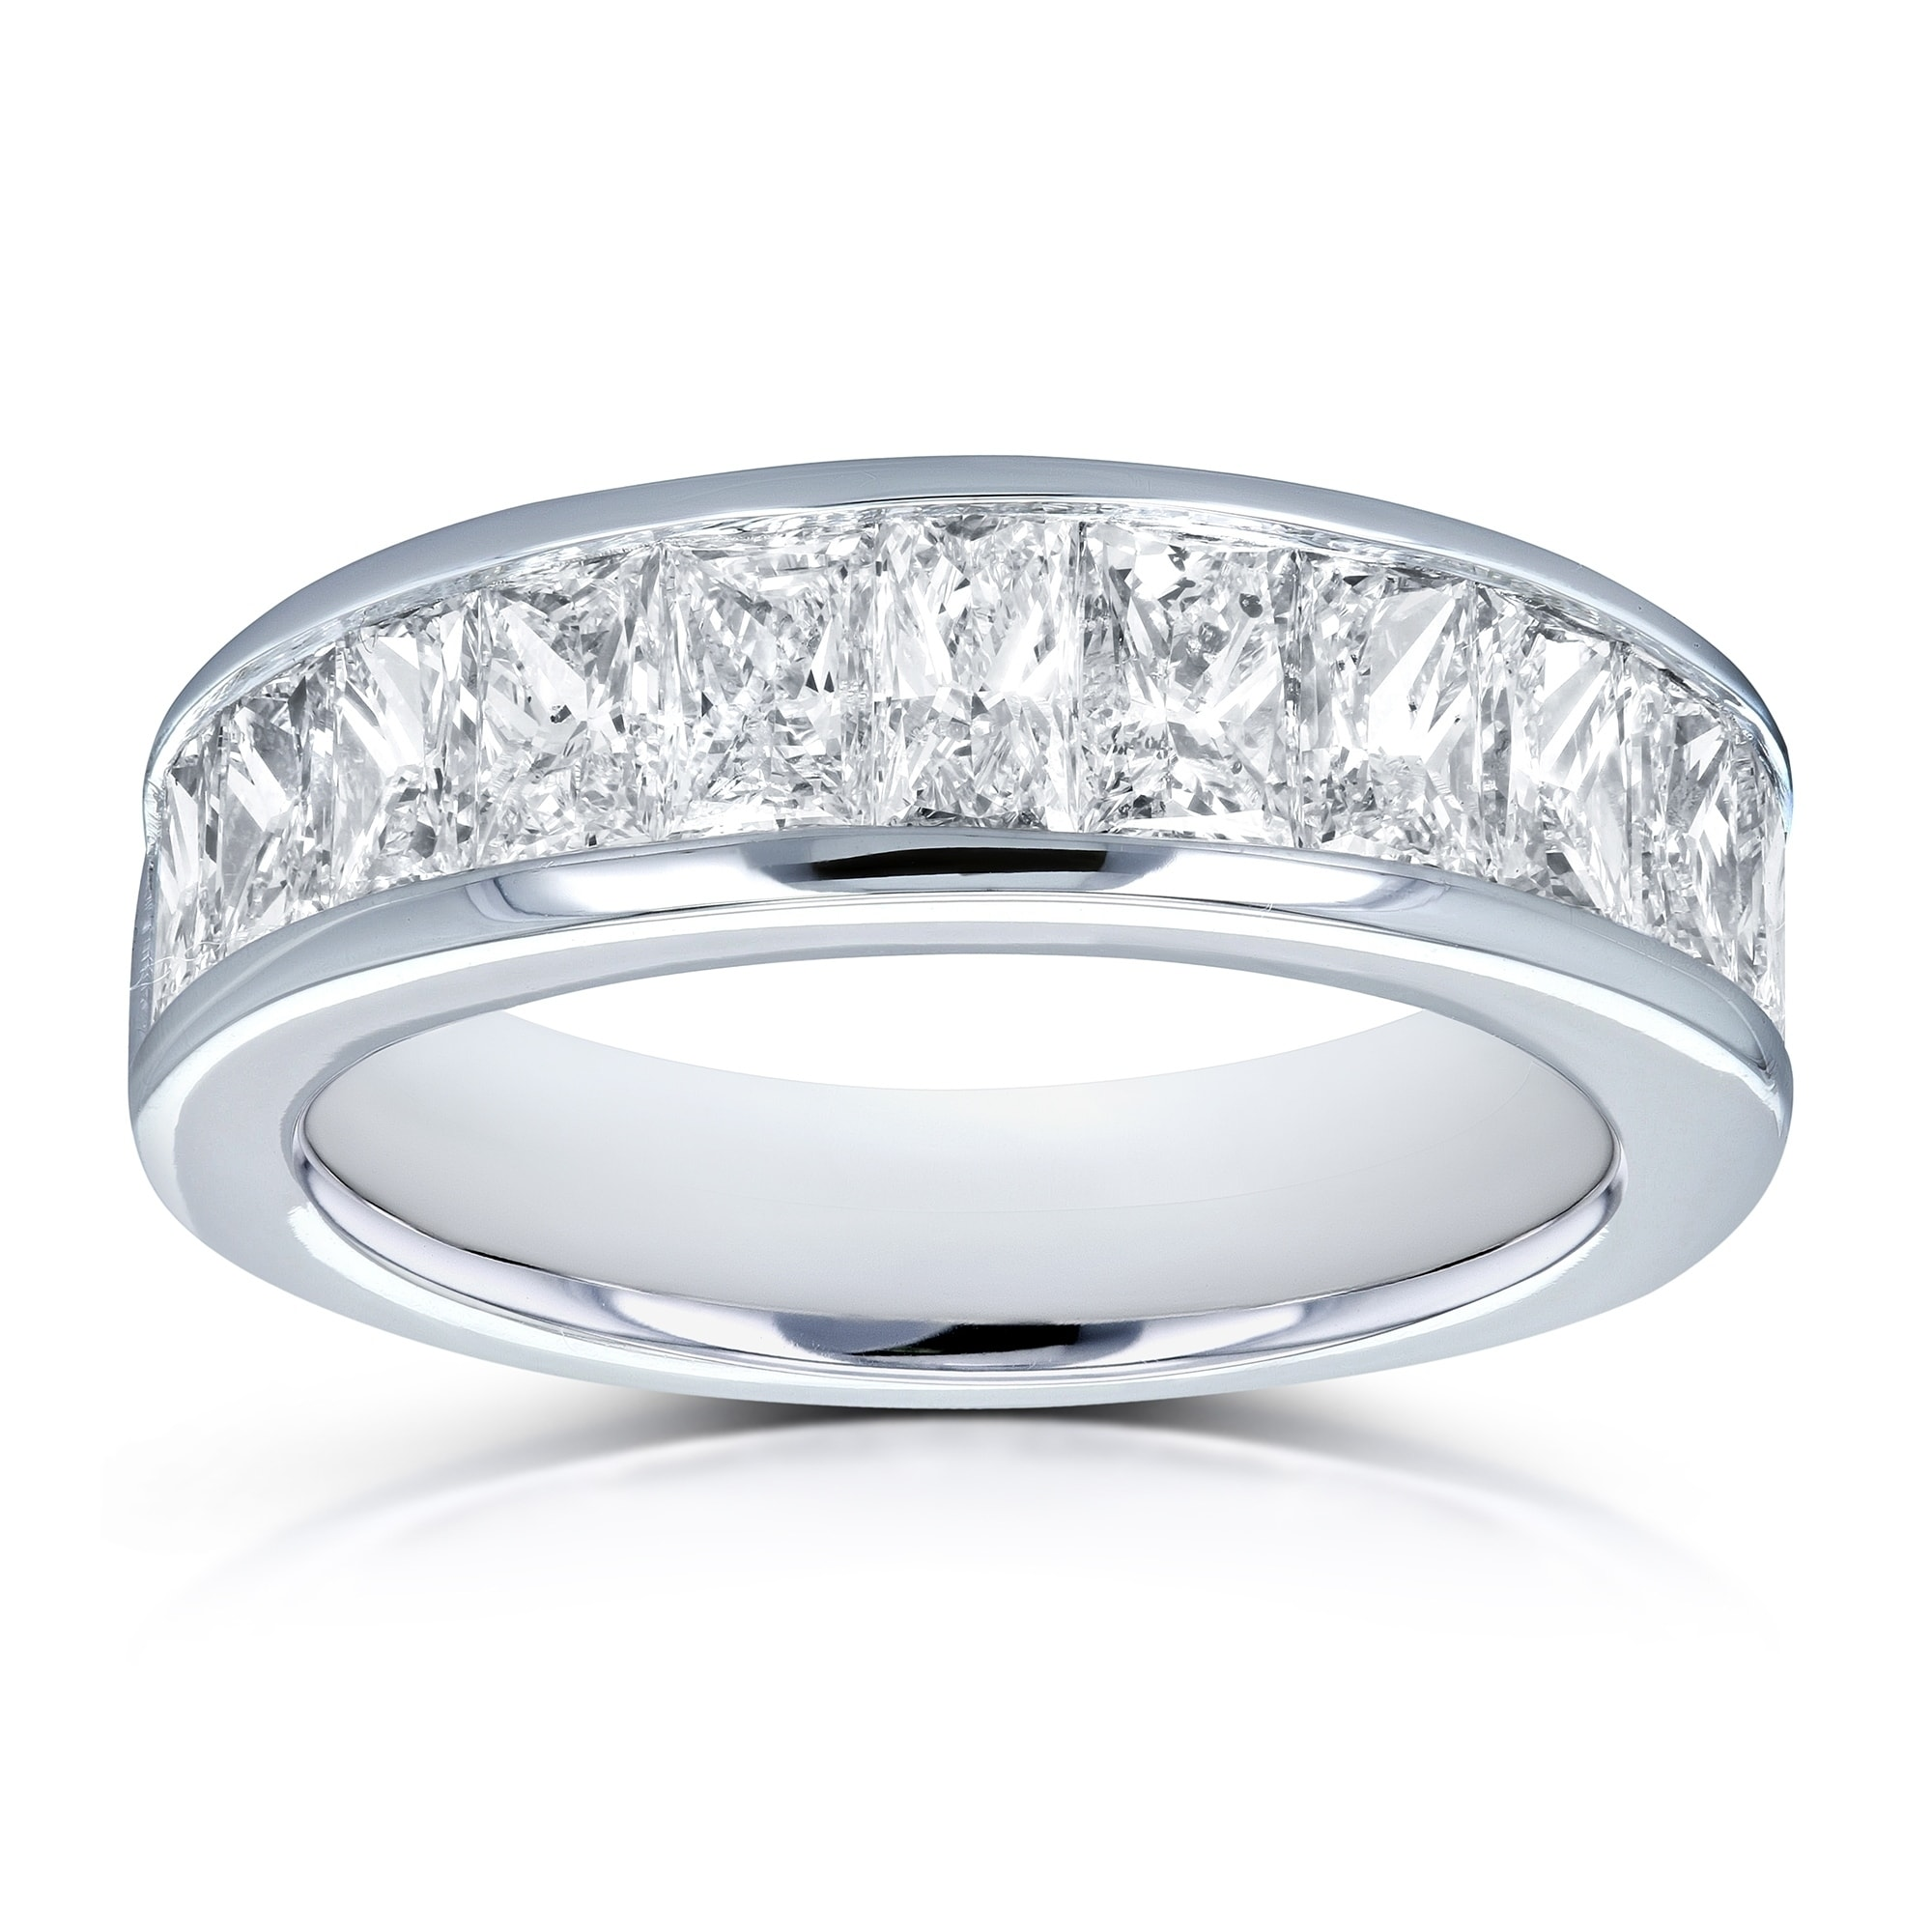 shaped rings diamonds estate baguette ring wedding tw pear diamond side in with platinum